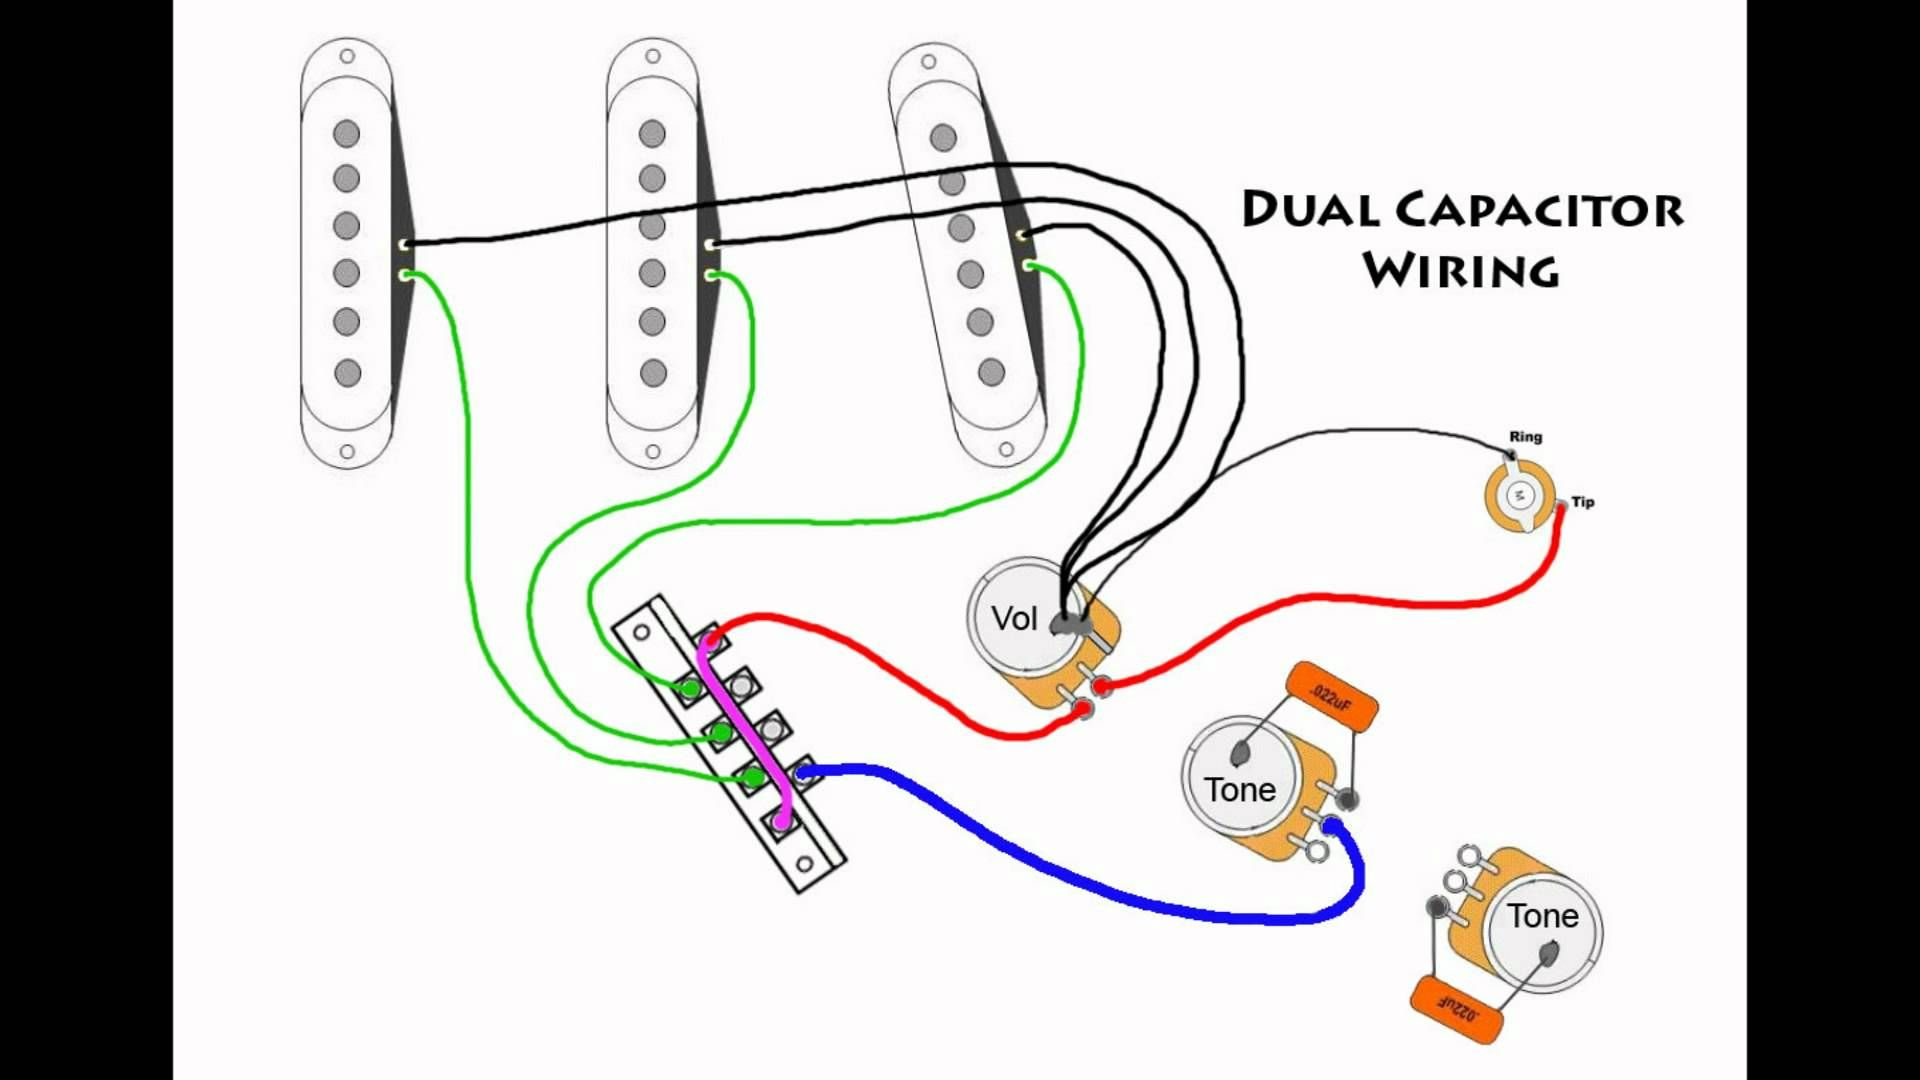 jeff baxter strat wiring diagram - google search | guitar ... fender blacktop strat wiring diagram